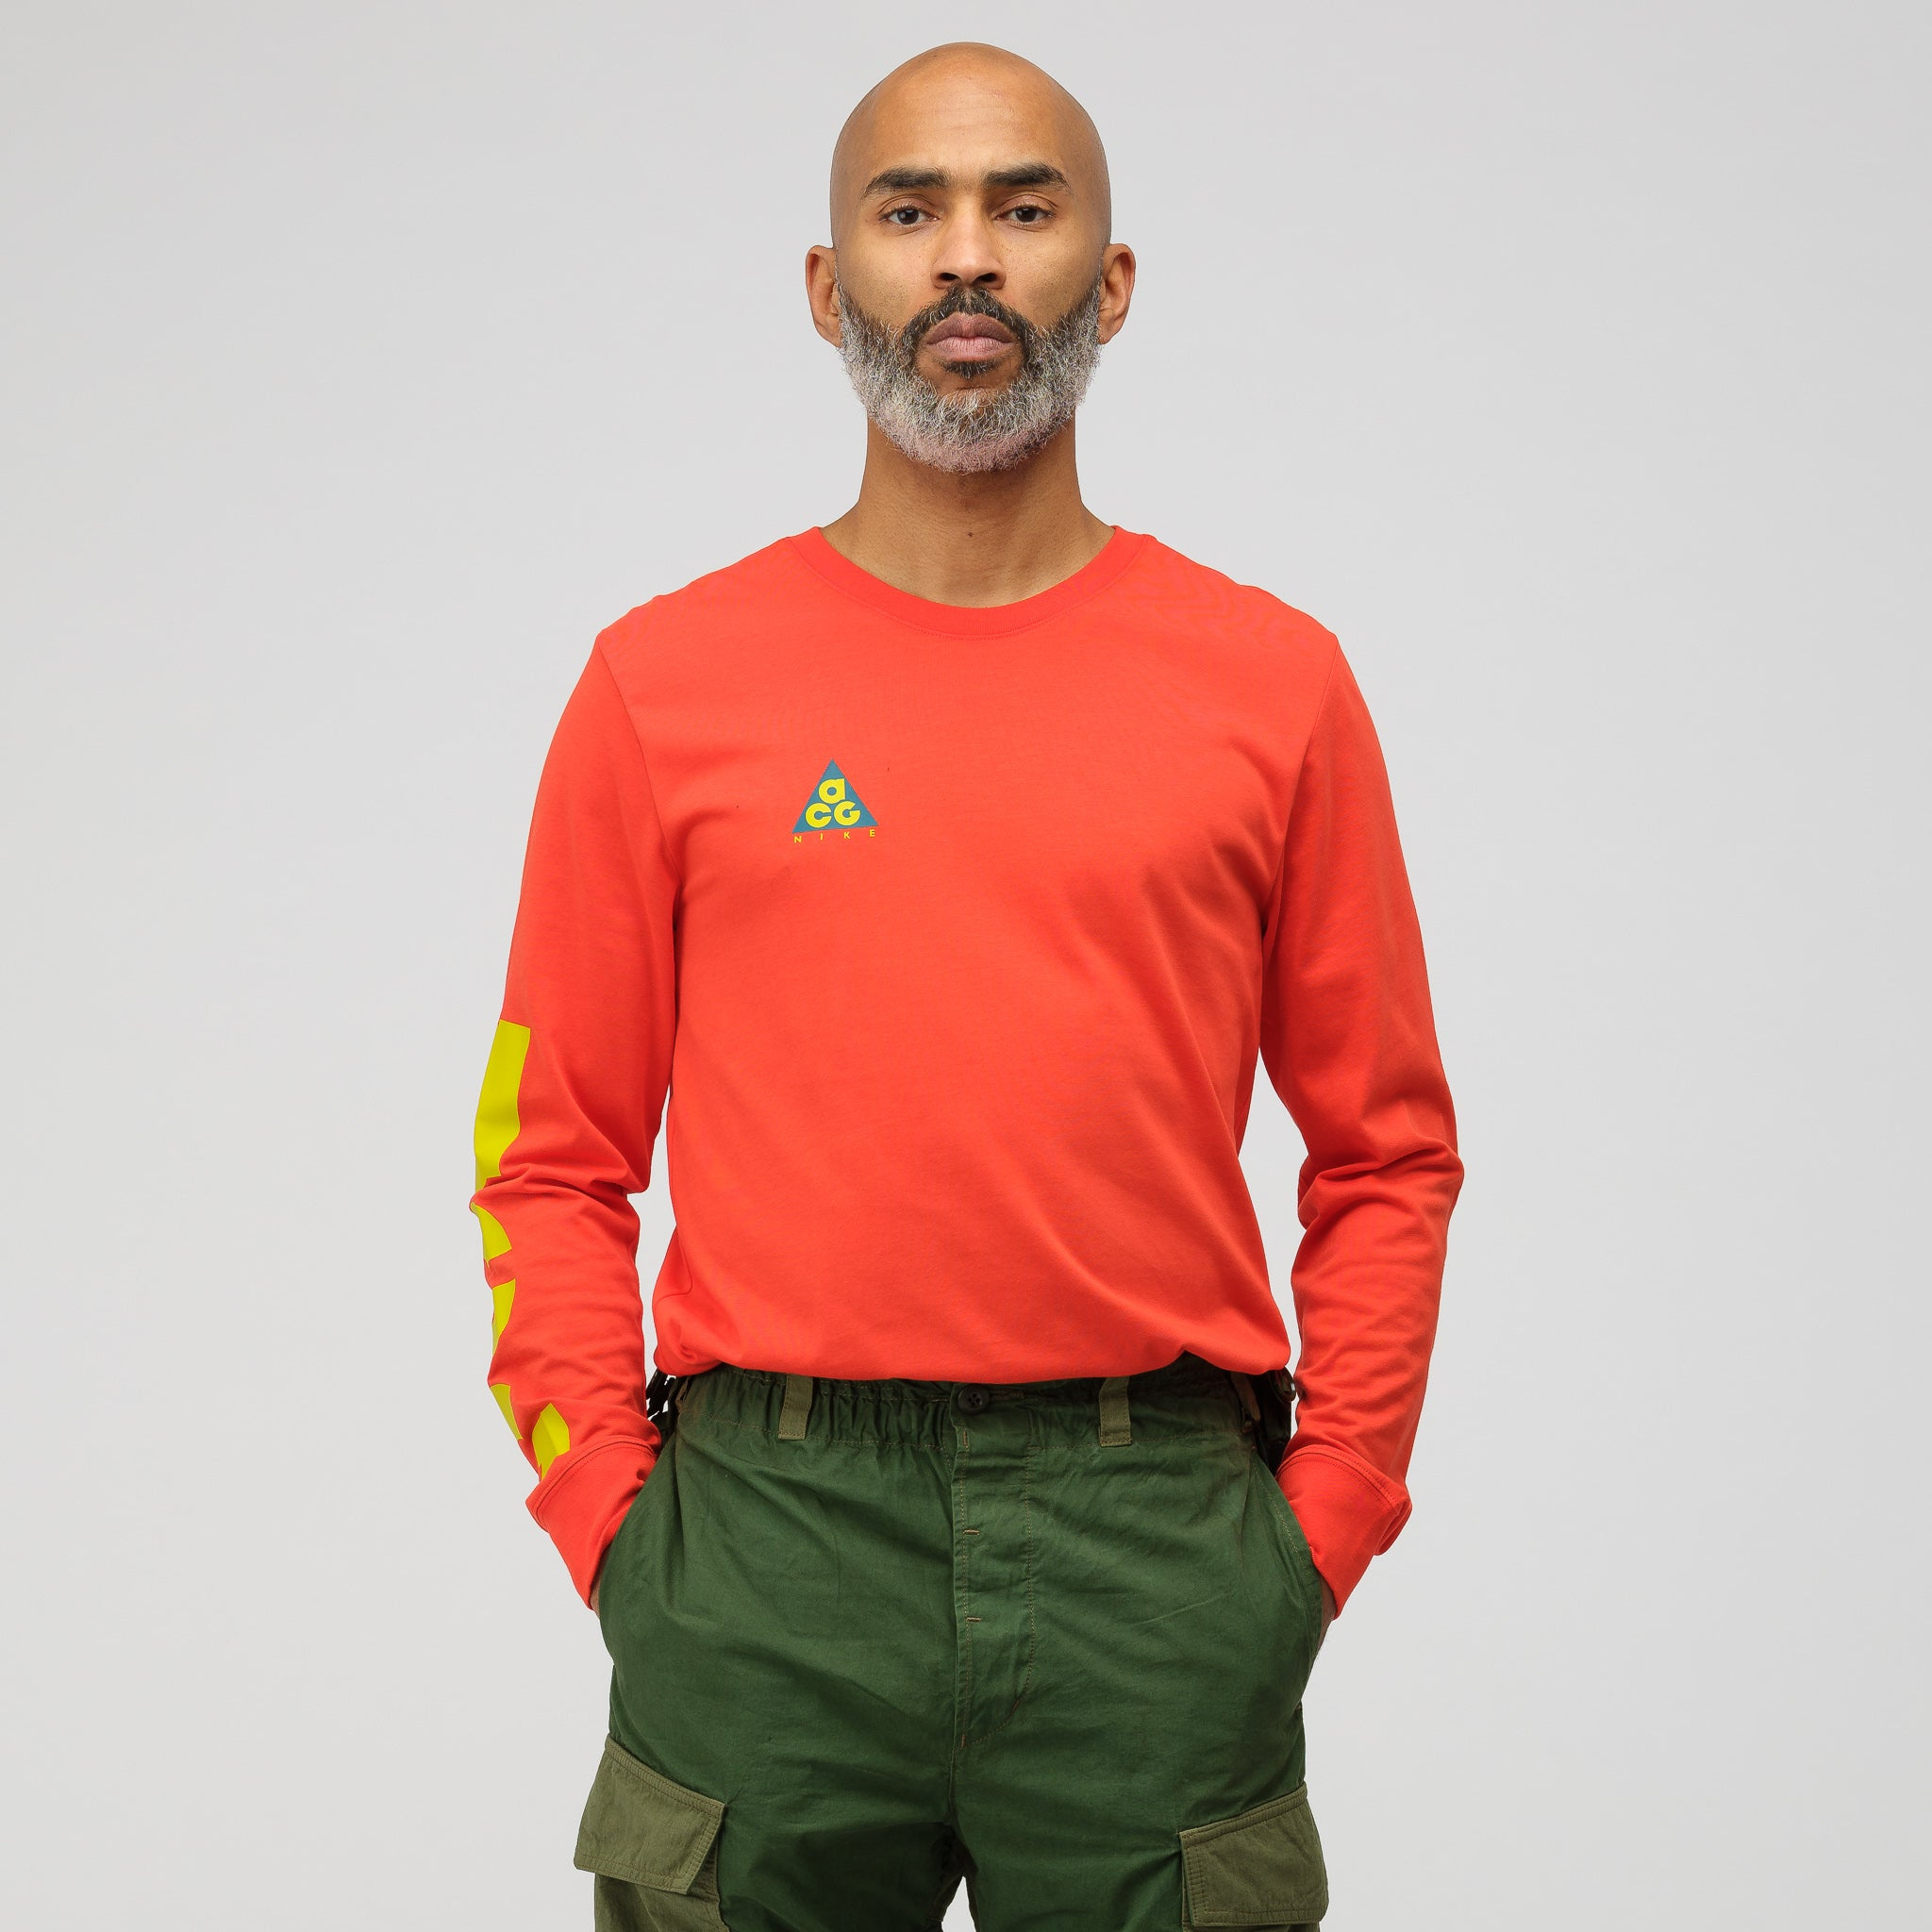 ACG Long Sleeve T-Shirt in Habanero Red